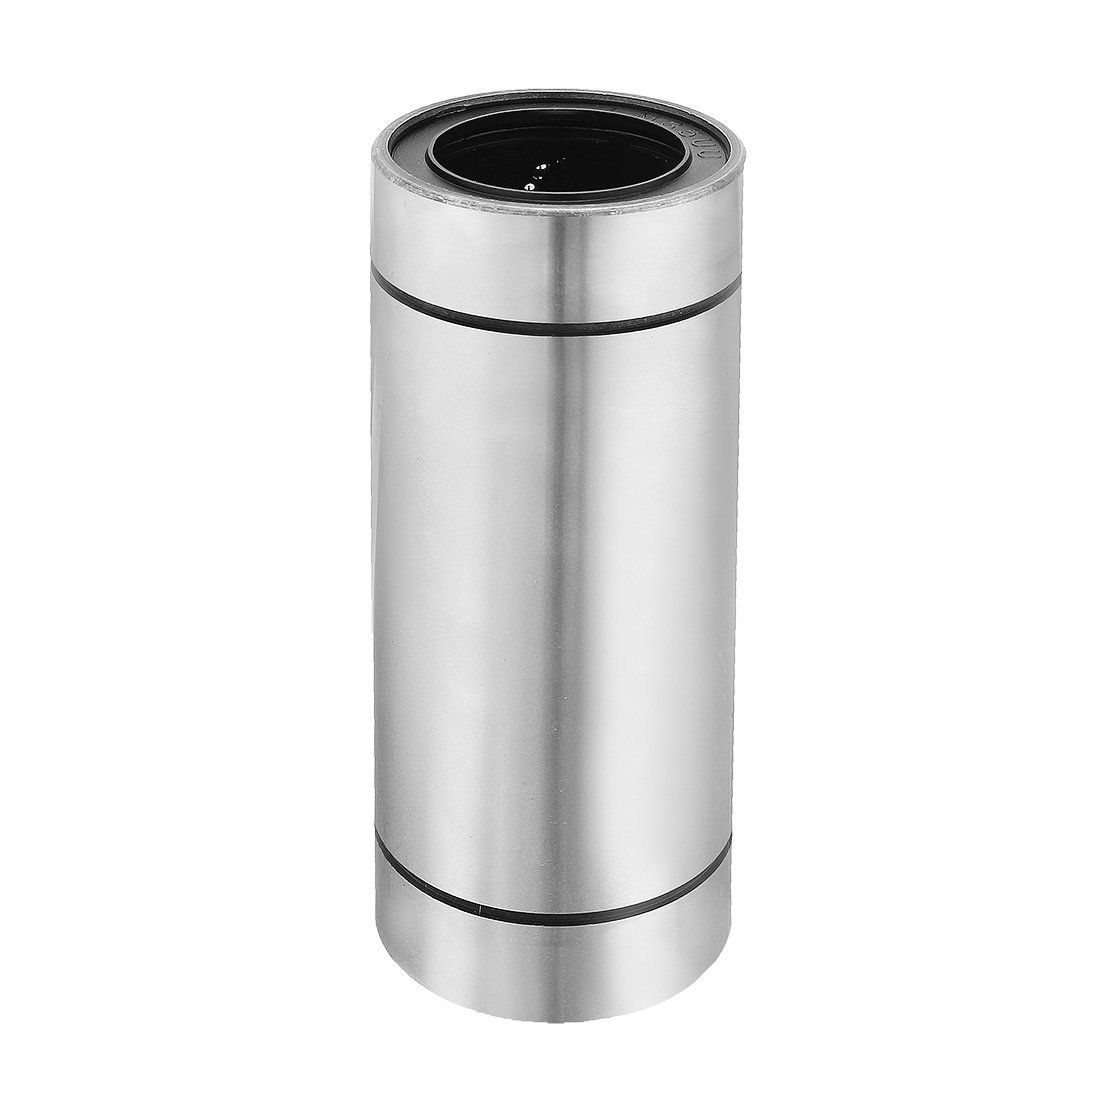 Hot Sale LM35UU 35mmx52mmx135mm Double Side Rubber Seal Linear Motion Ball Bearing Bushing 1pcs linear motion bearings double side rubber seales lm35uu